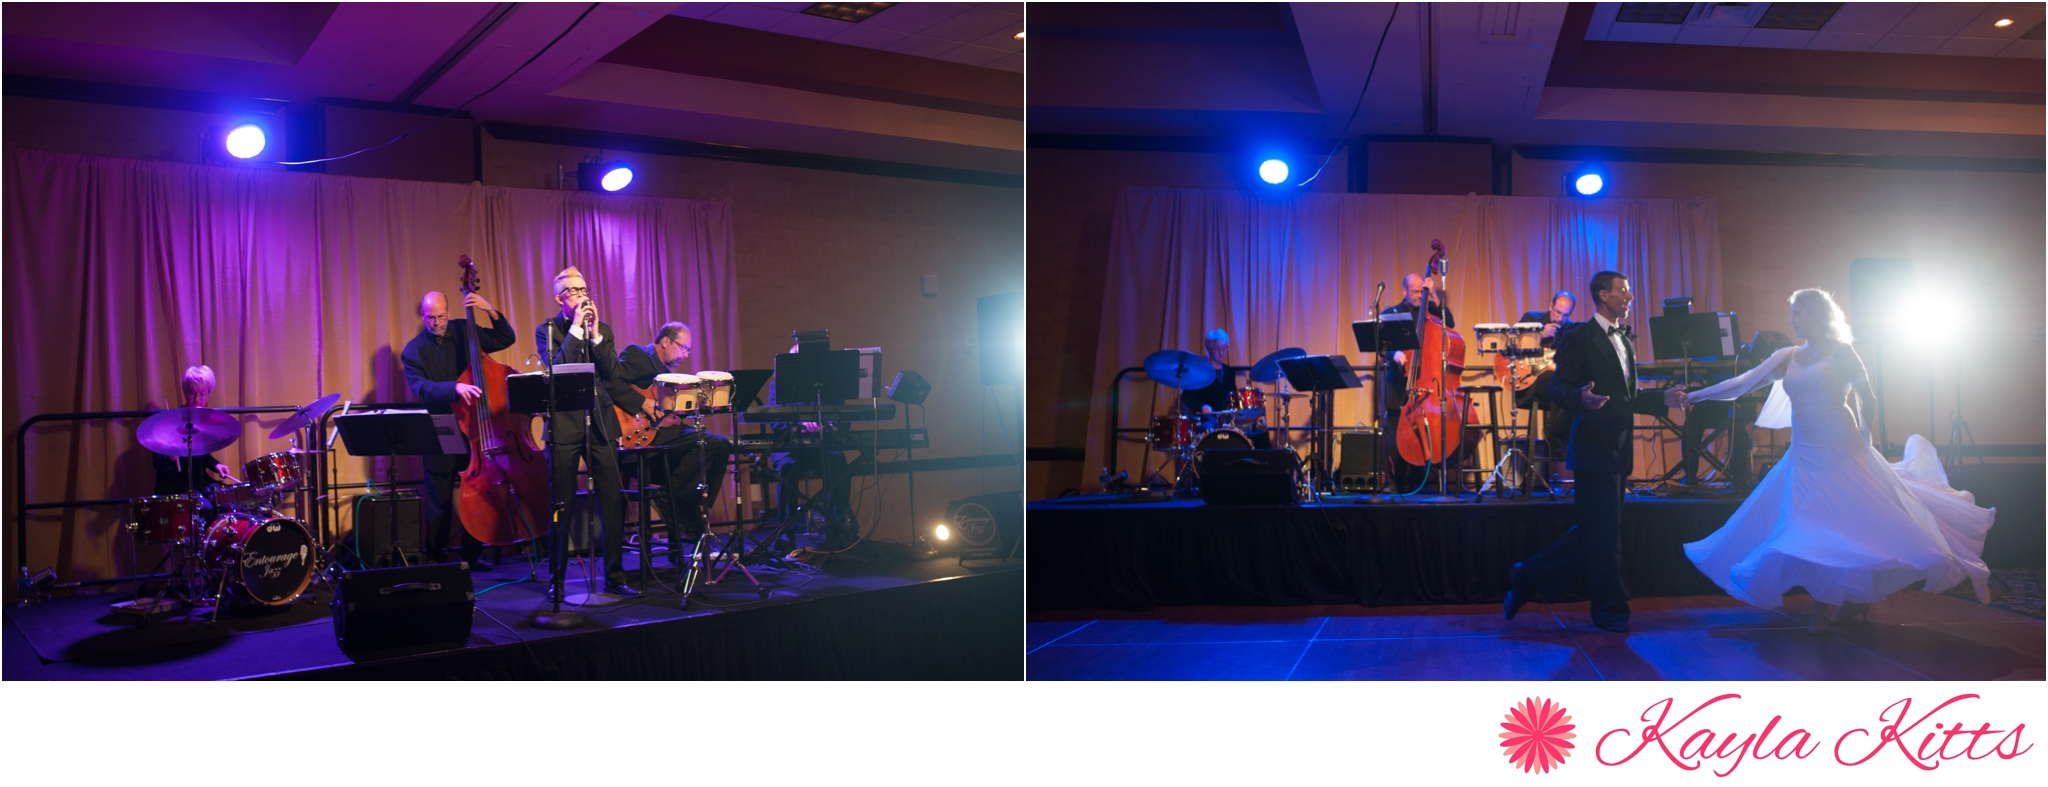 kayla kitts photography - perfect wedding guide - client appreciation party - albuqueruqe marriott_0006.jpg